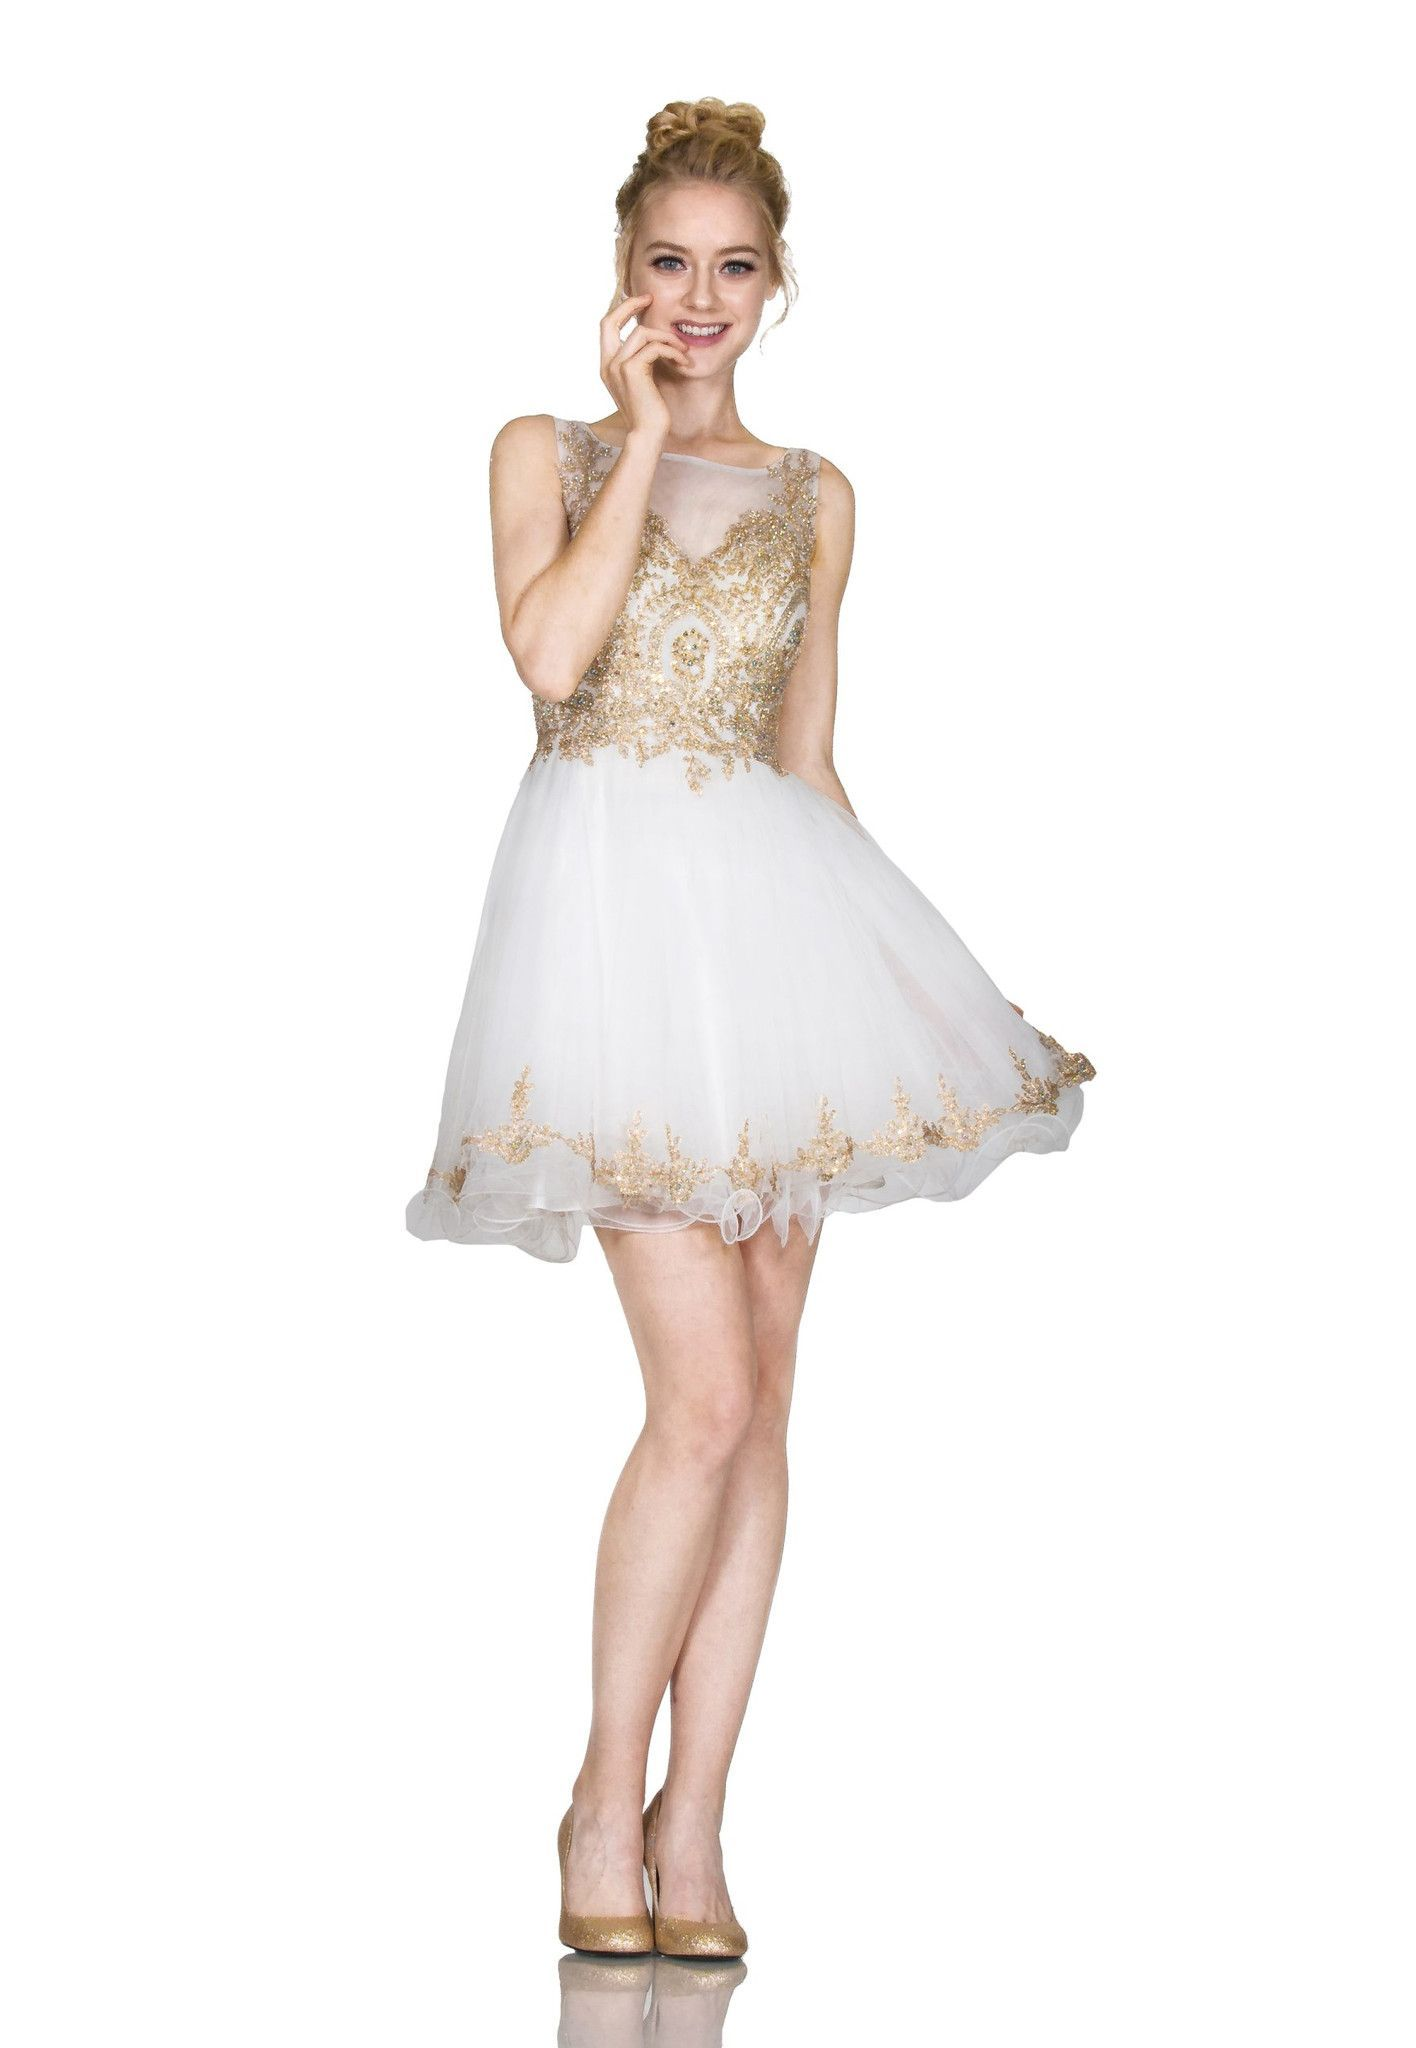 252fb64952 Short Ruffled Illusion Dress with Gold Applique by Cinderella Divine 8932